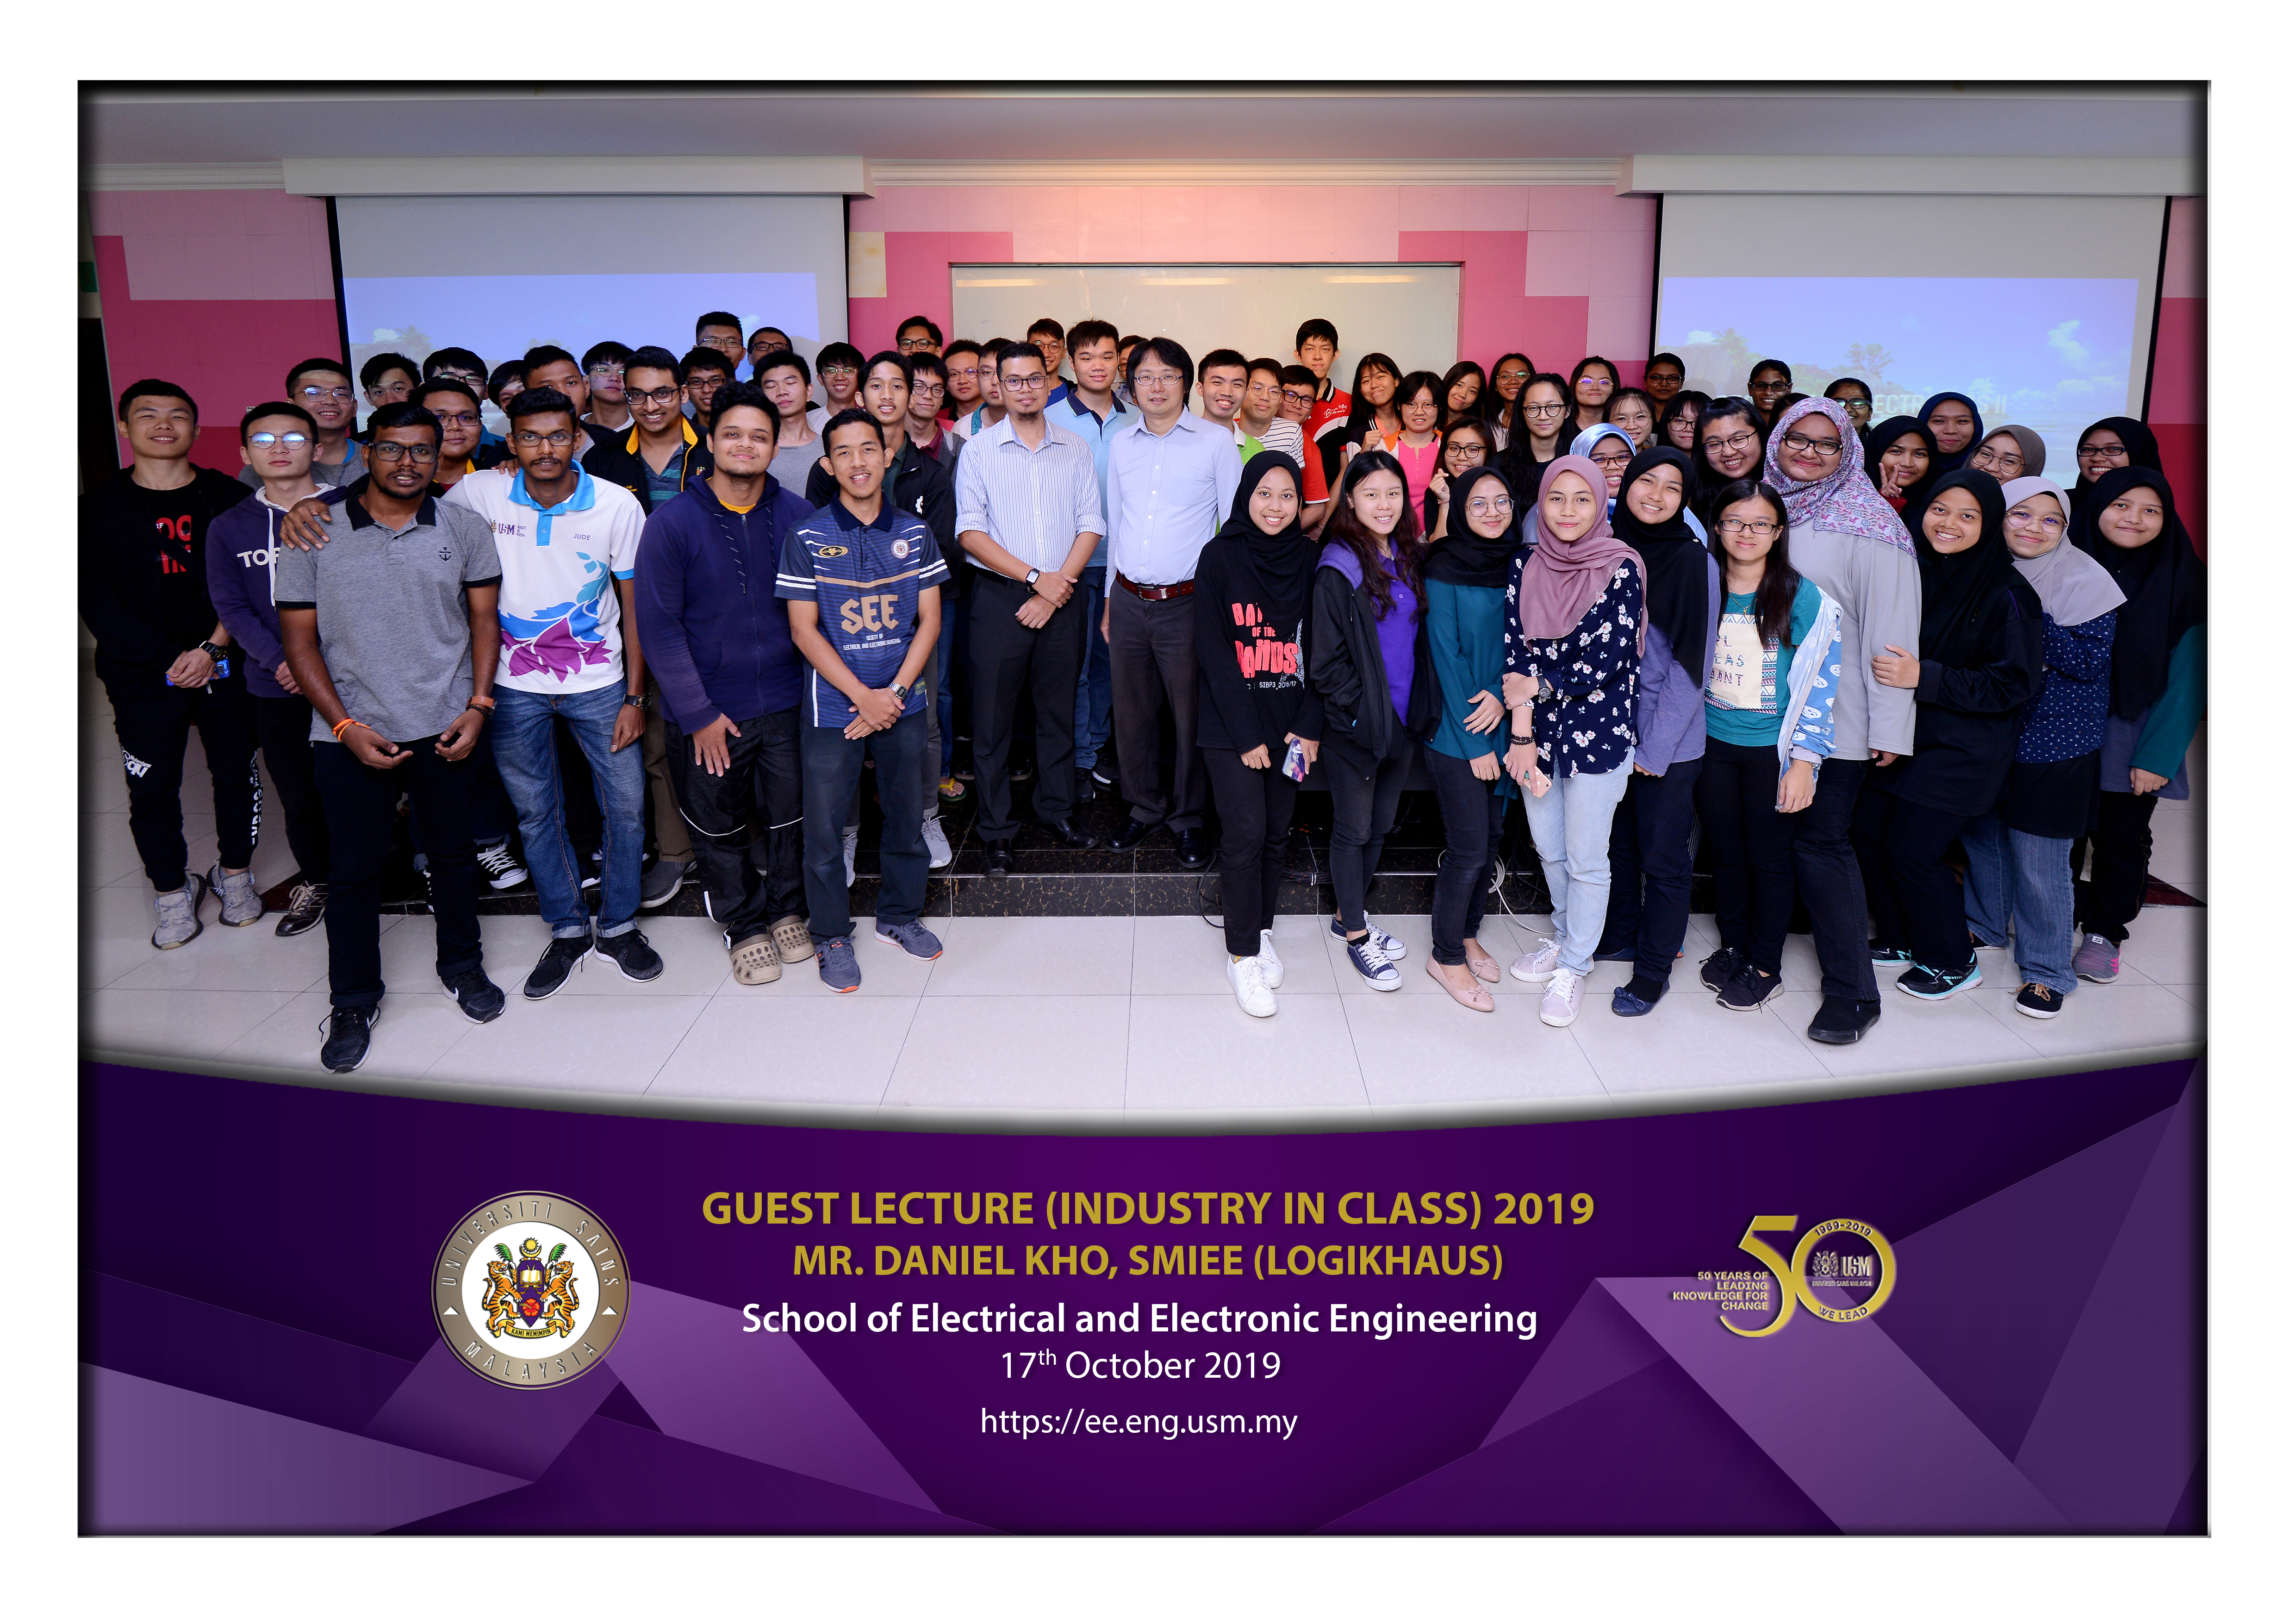 Guest Lecture Mr Daniel Kho Industry in Class 2019